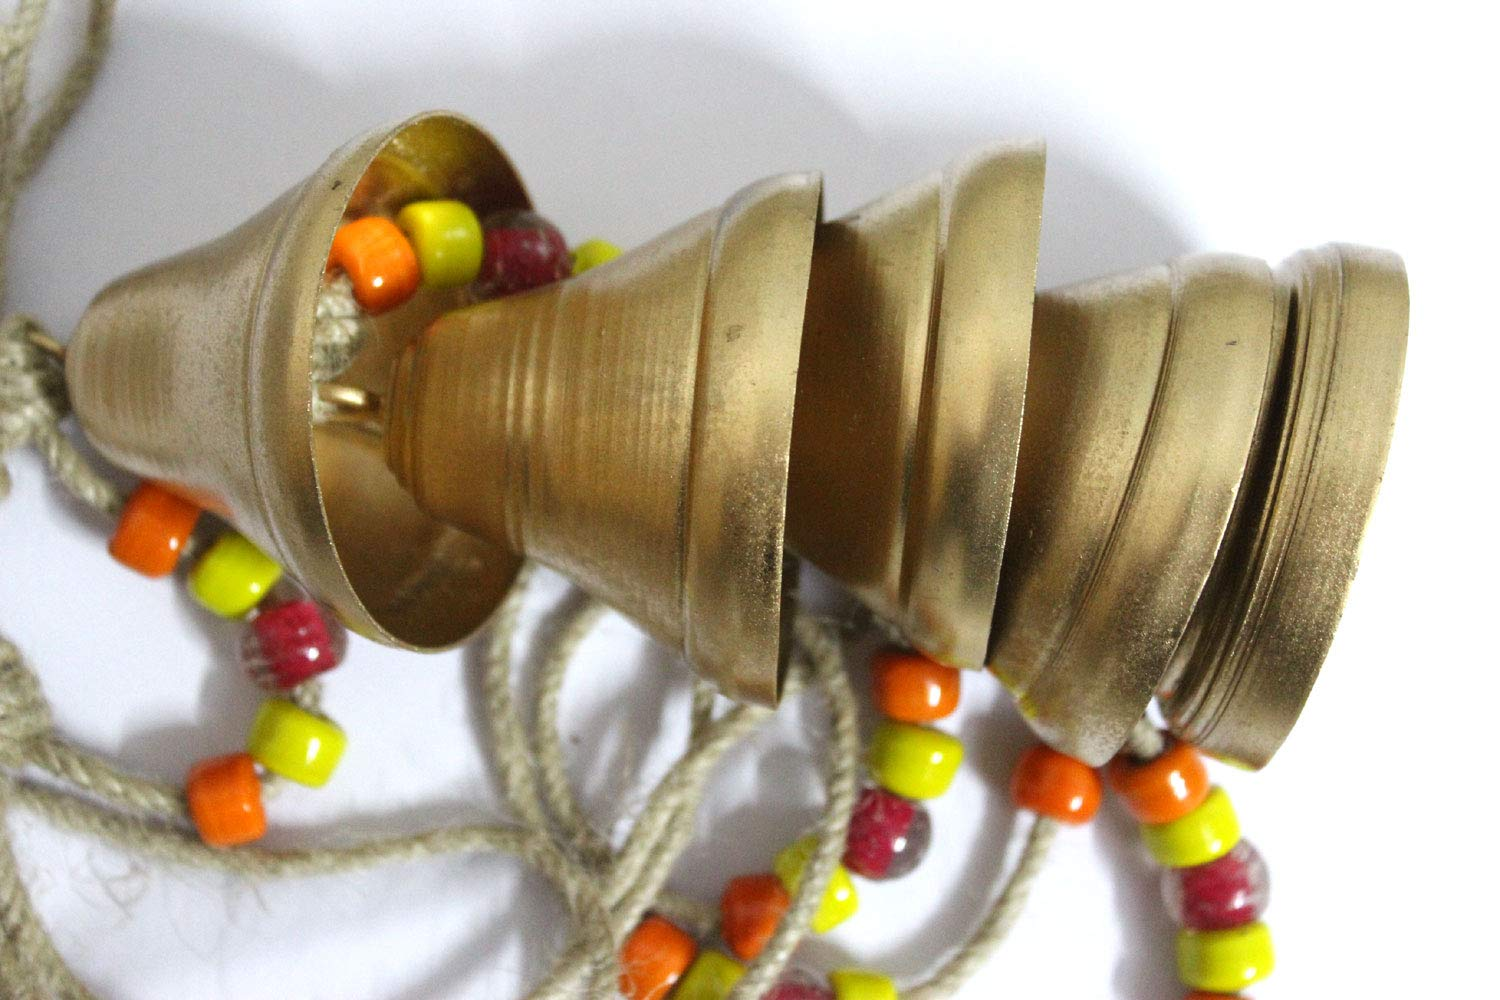 Mango Gifts Decorative String of 5 Metal Golden Indian Style Wall Hanging Bells mgt-5bells